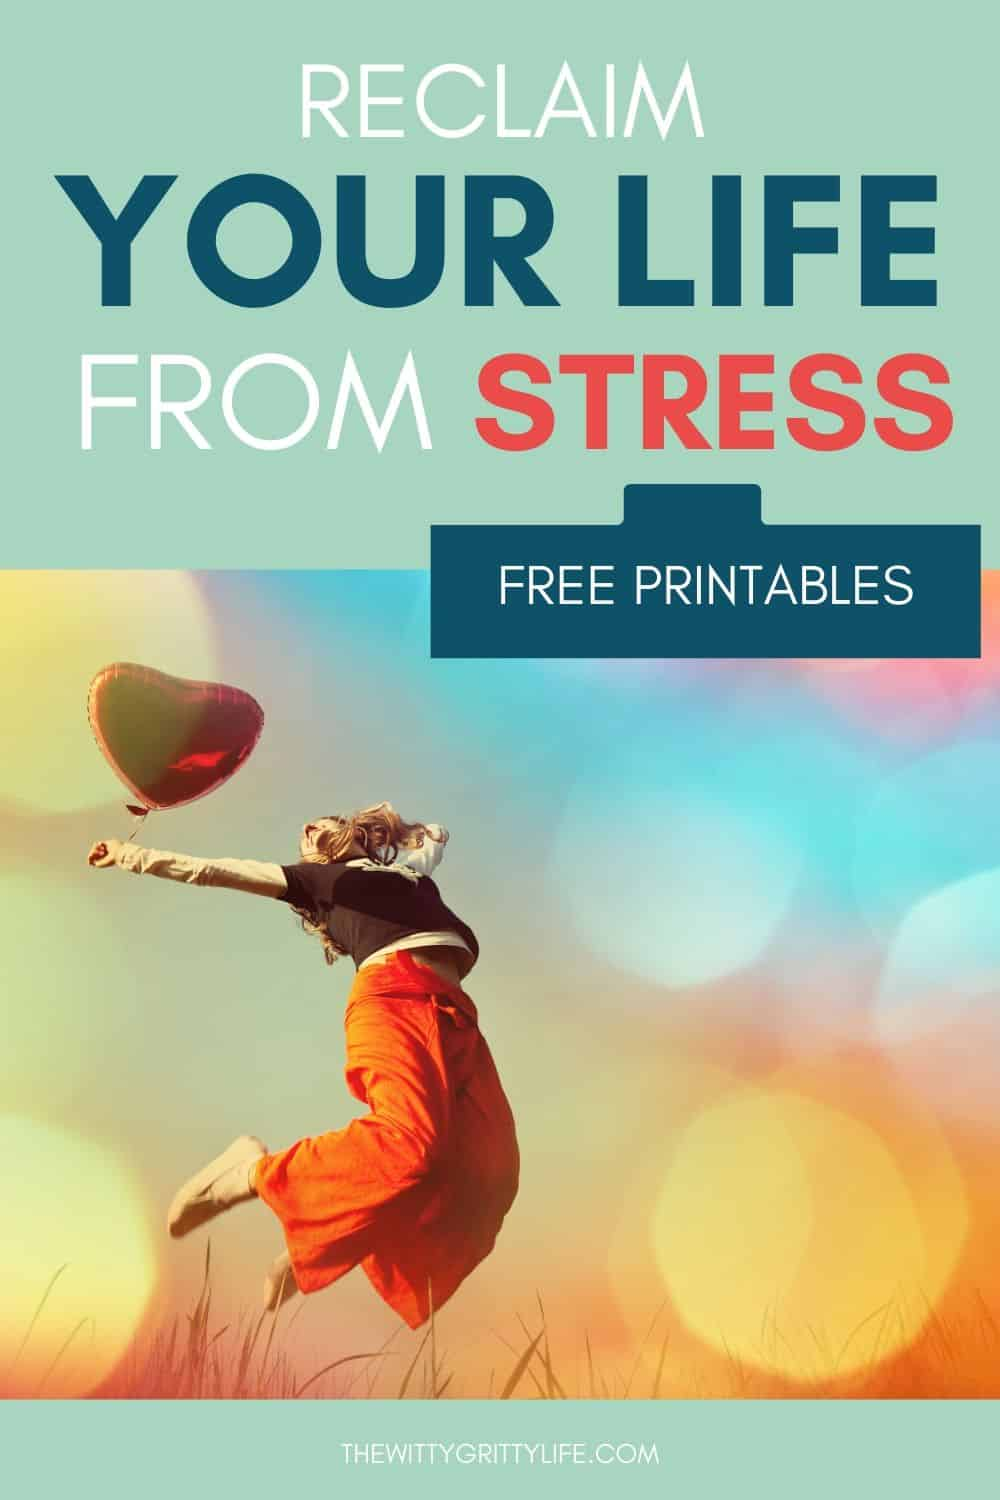 Pinterest image titled Reclaim your life from stress, showing happy woman with a balloon jumping up into the air in front of a colorful background